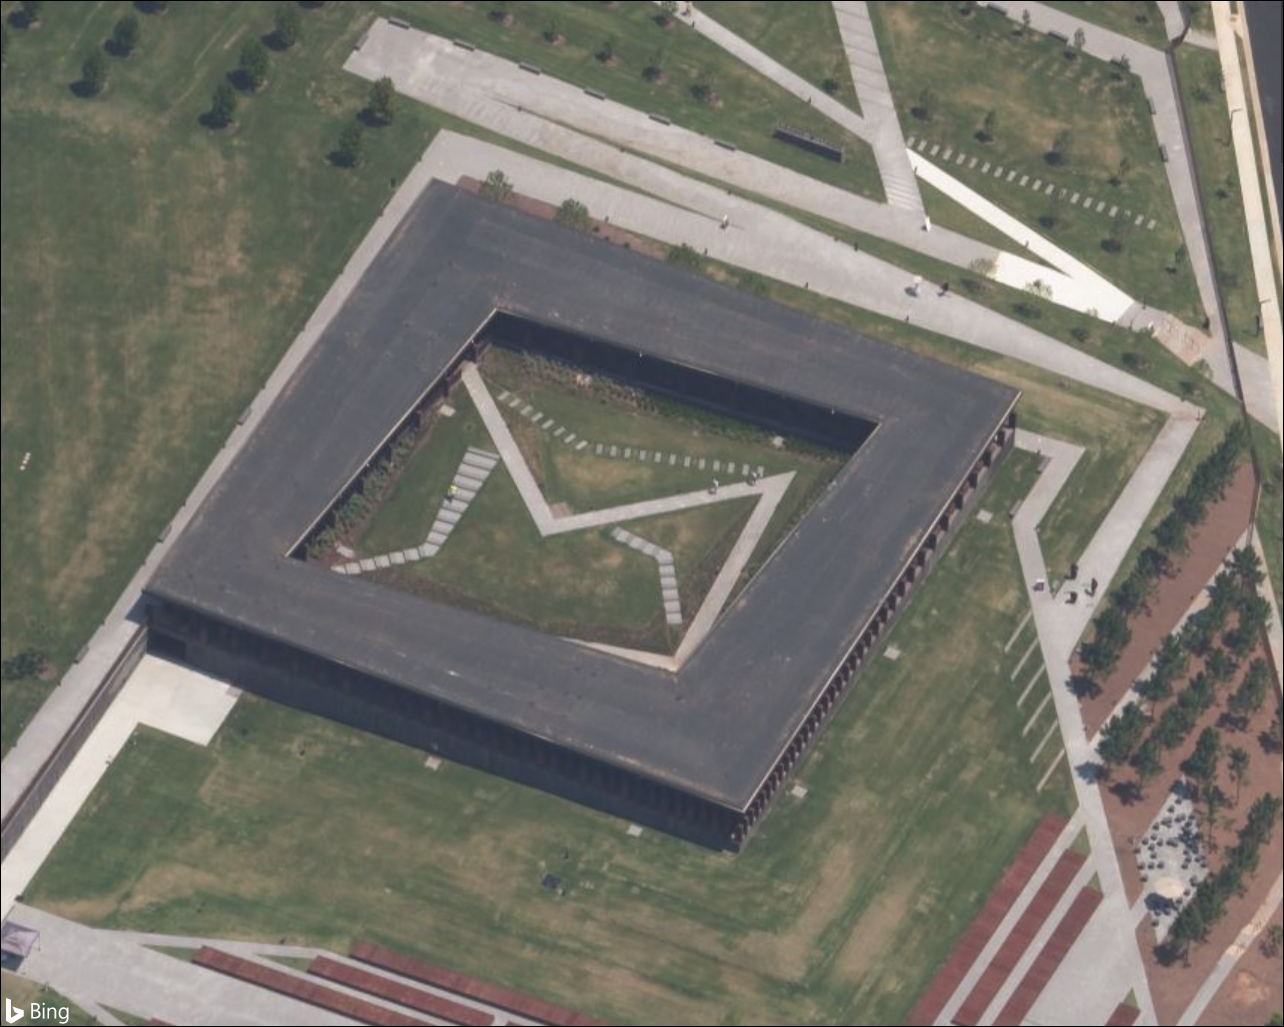 Bing Maps Released New Bird's Eye Imagery NationalMemorialForPeaceandJustice_MontgomeryAL.png